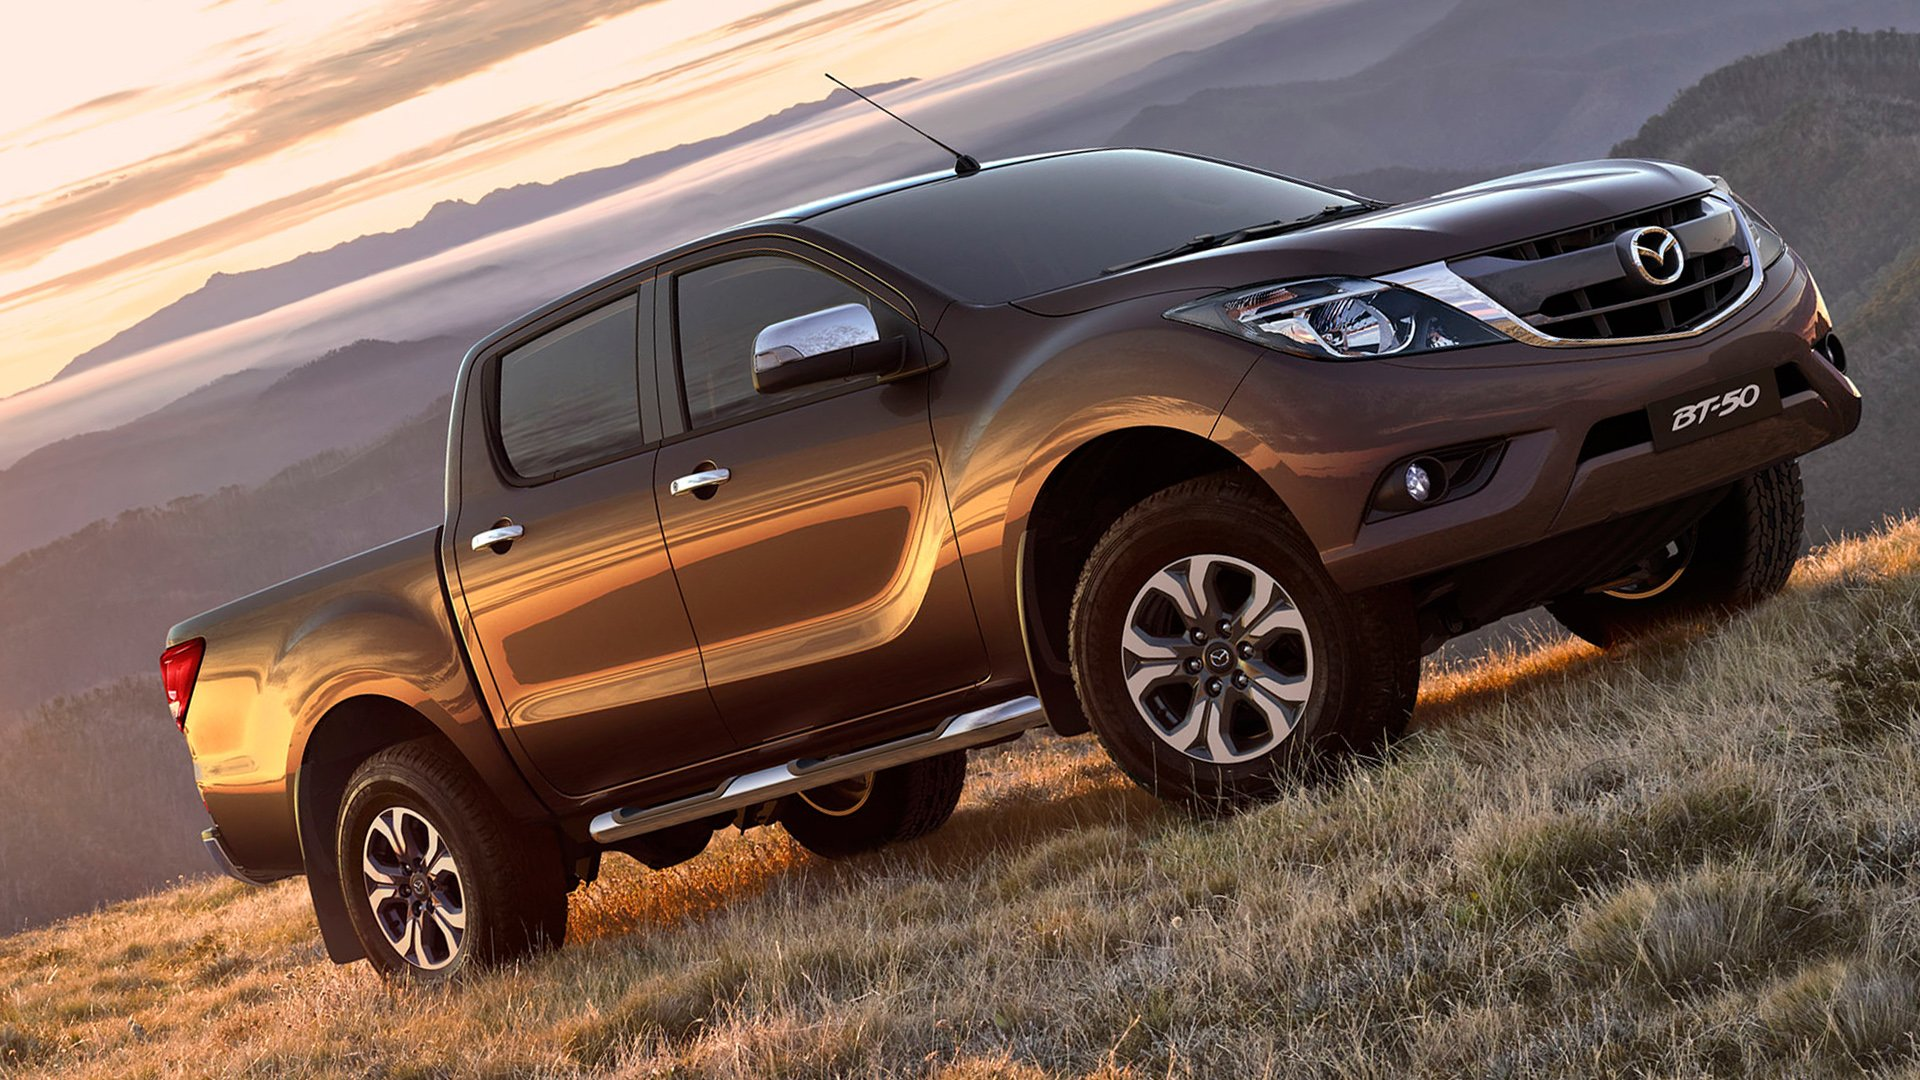 Truck Pickup Wagon New 2019 Mazda BT-50 HD